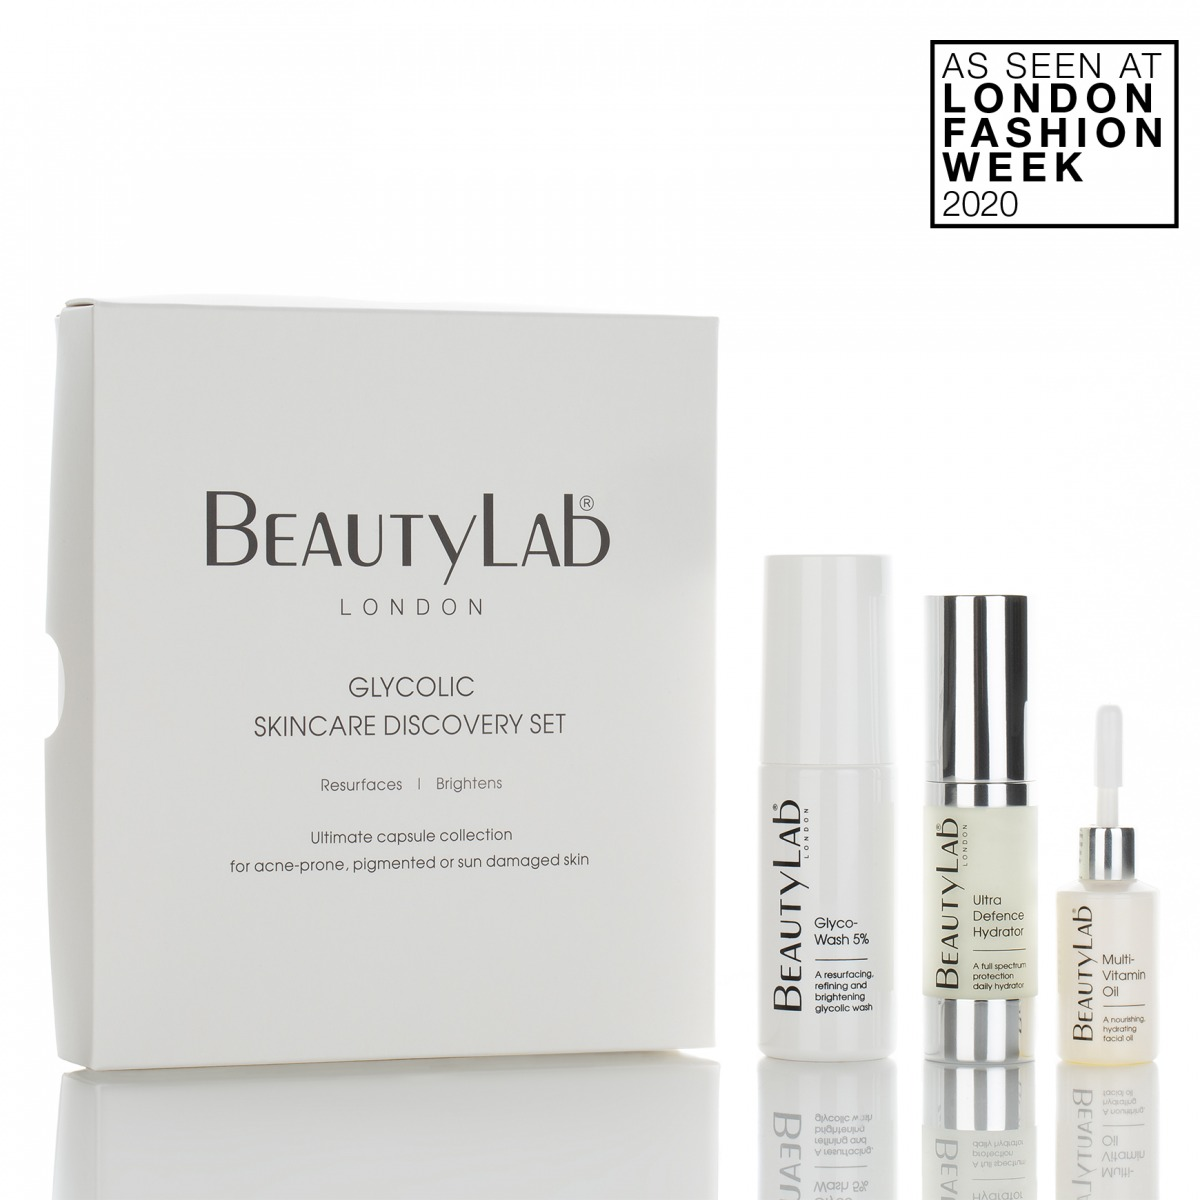 Glycolic Skincare Discovery Set